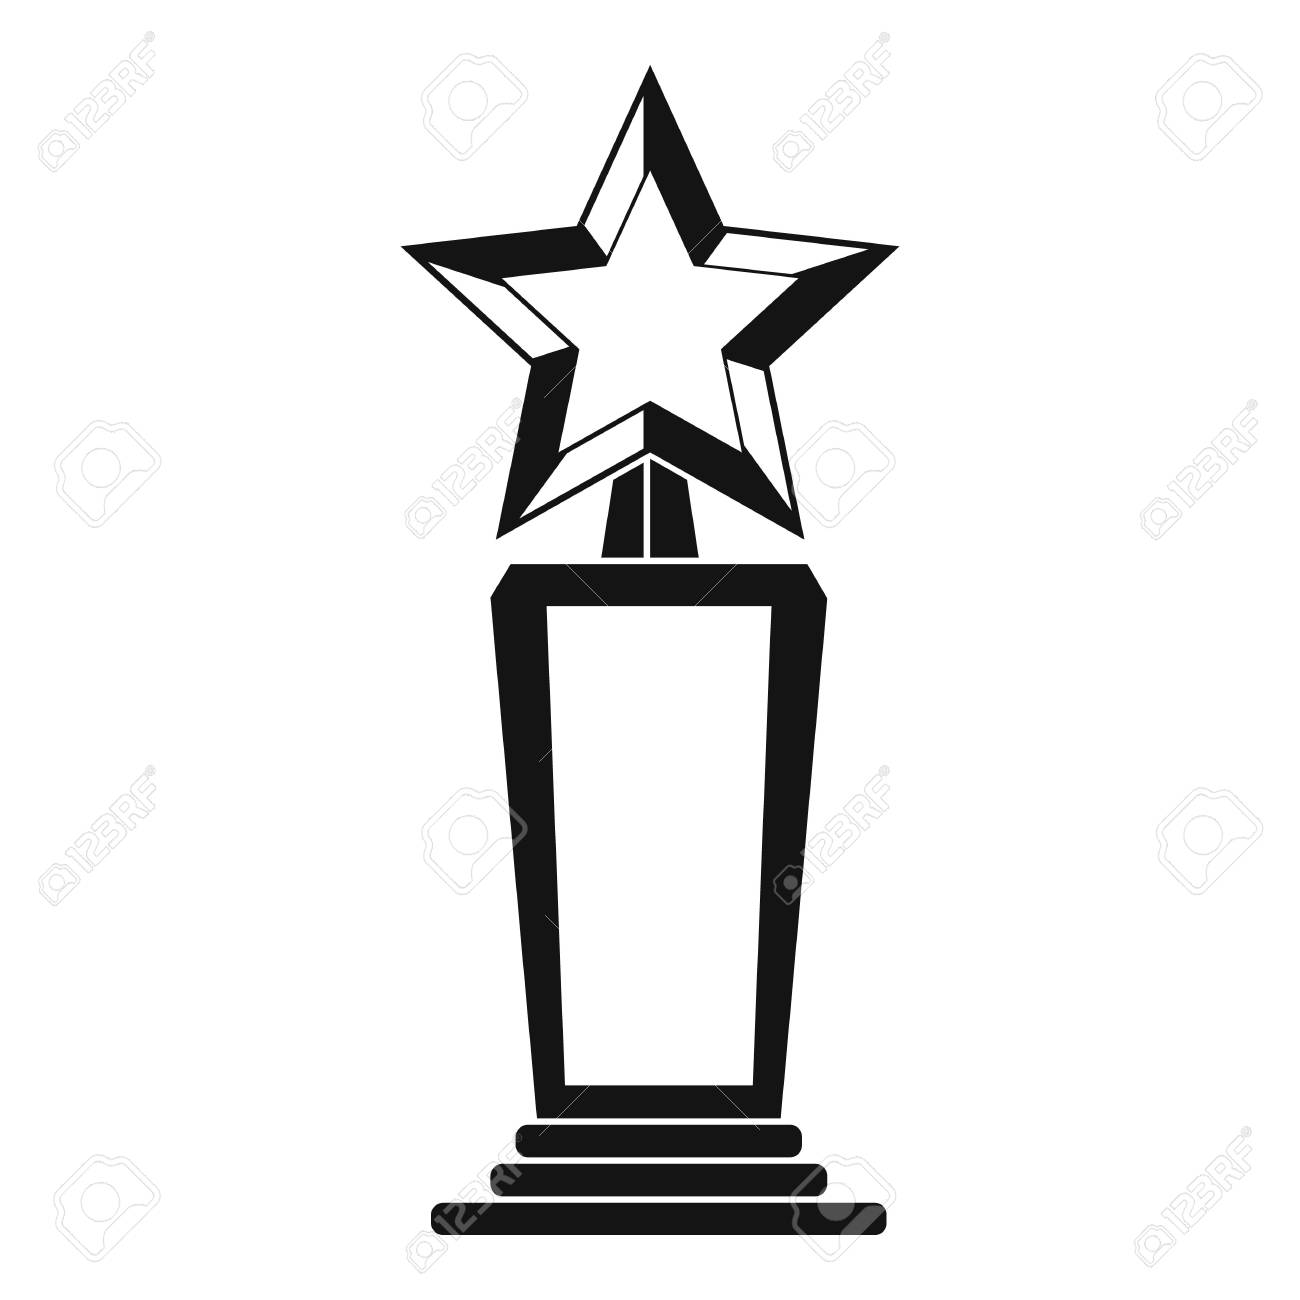 Star Award Icon Simple Illustration Of Vector Isolated On White Background Stock